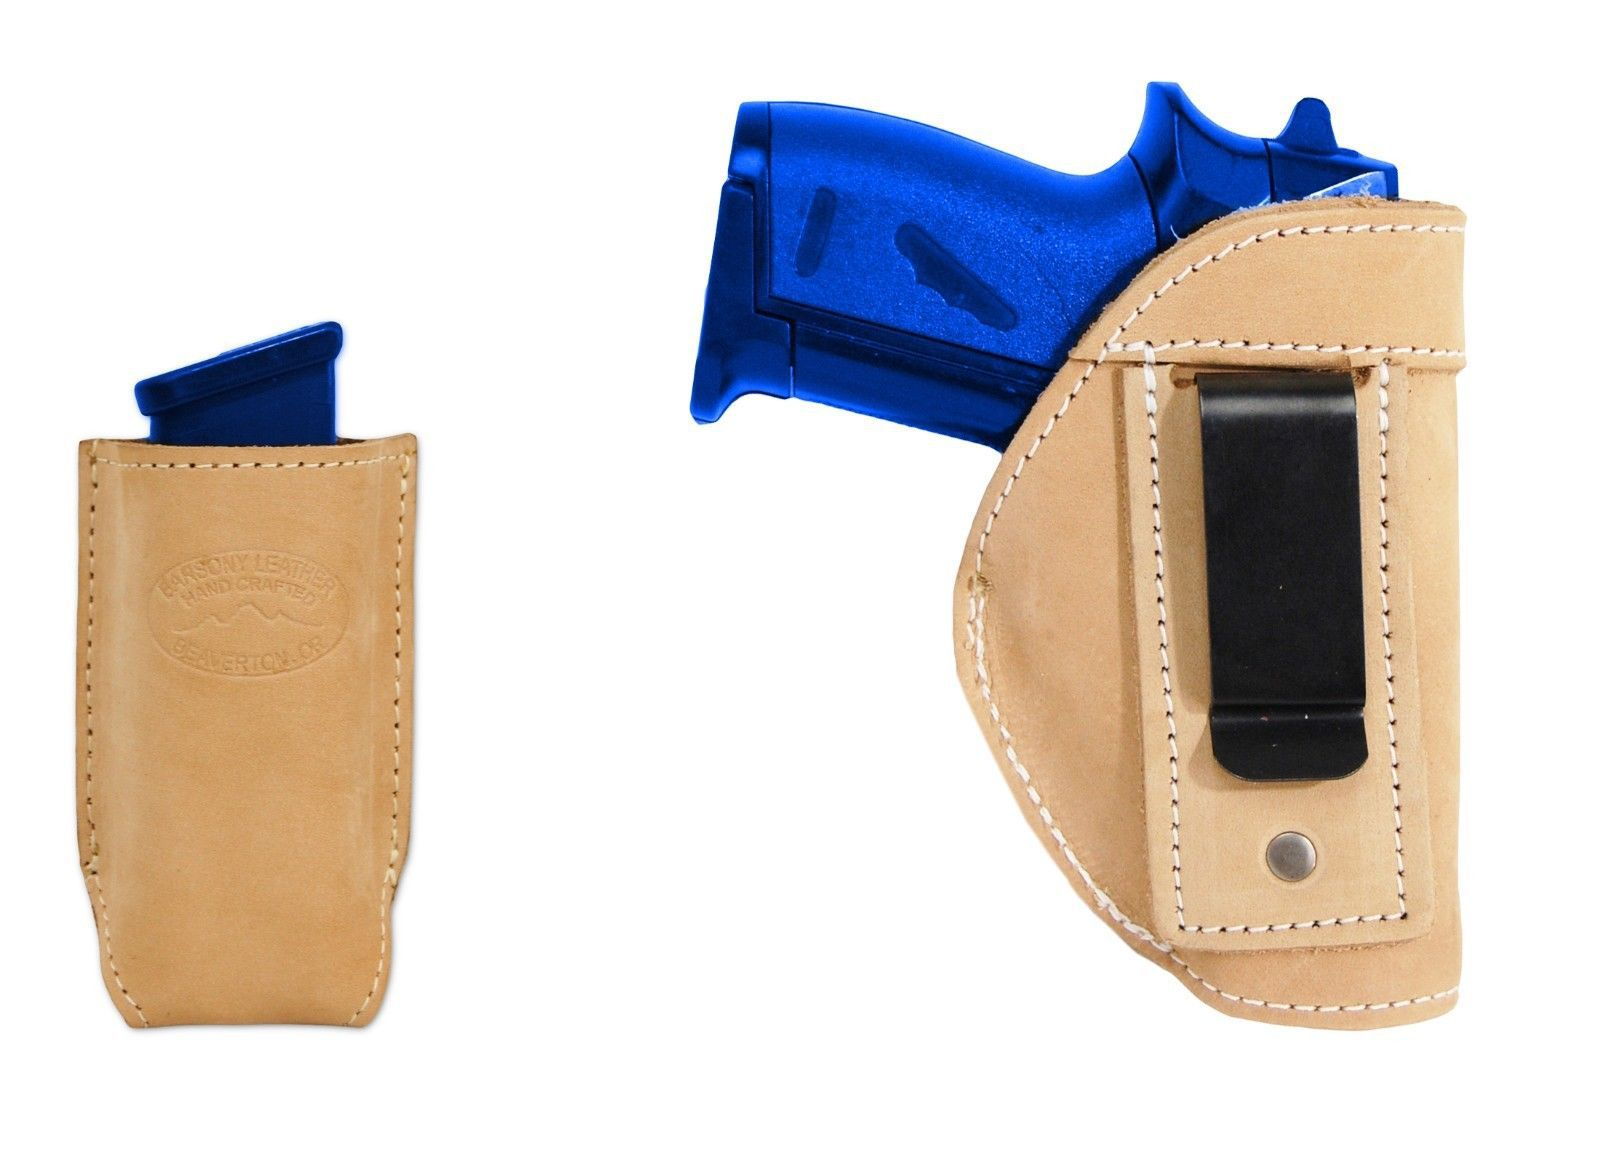 Spider holster coupon code 2018